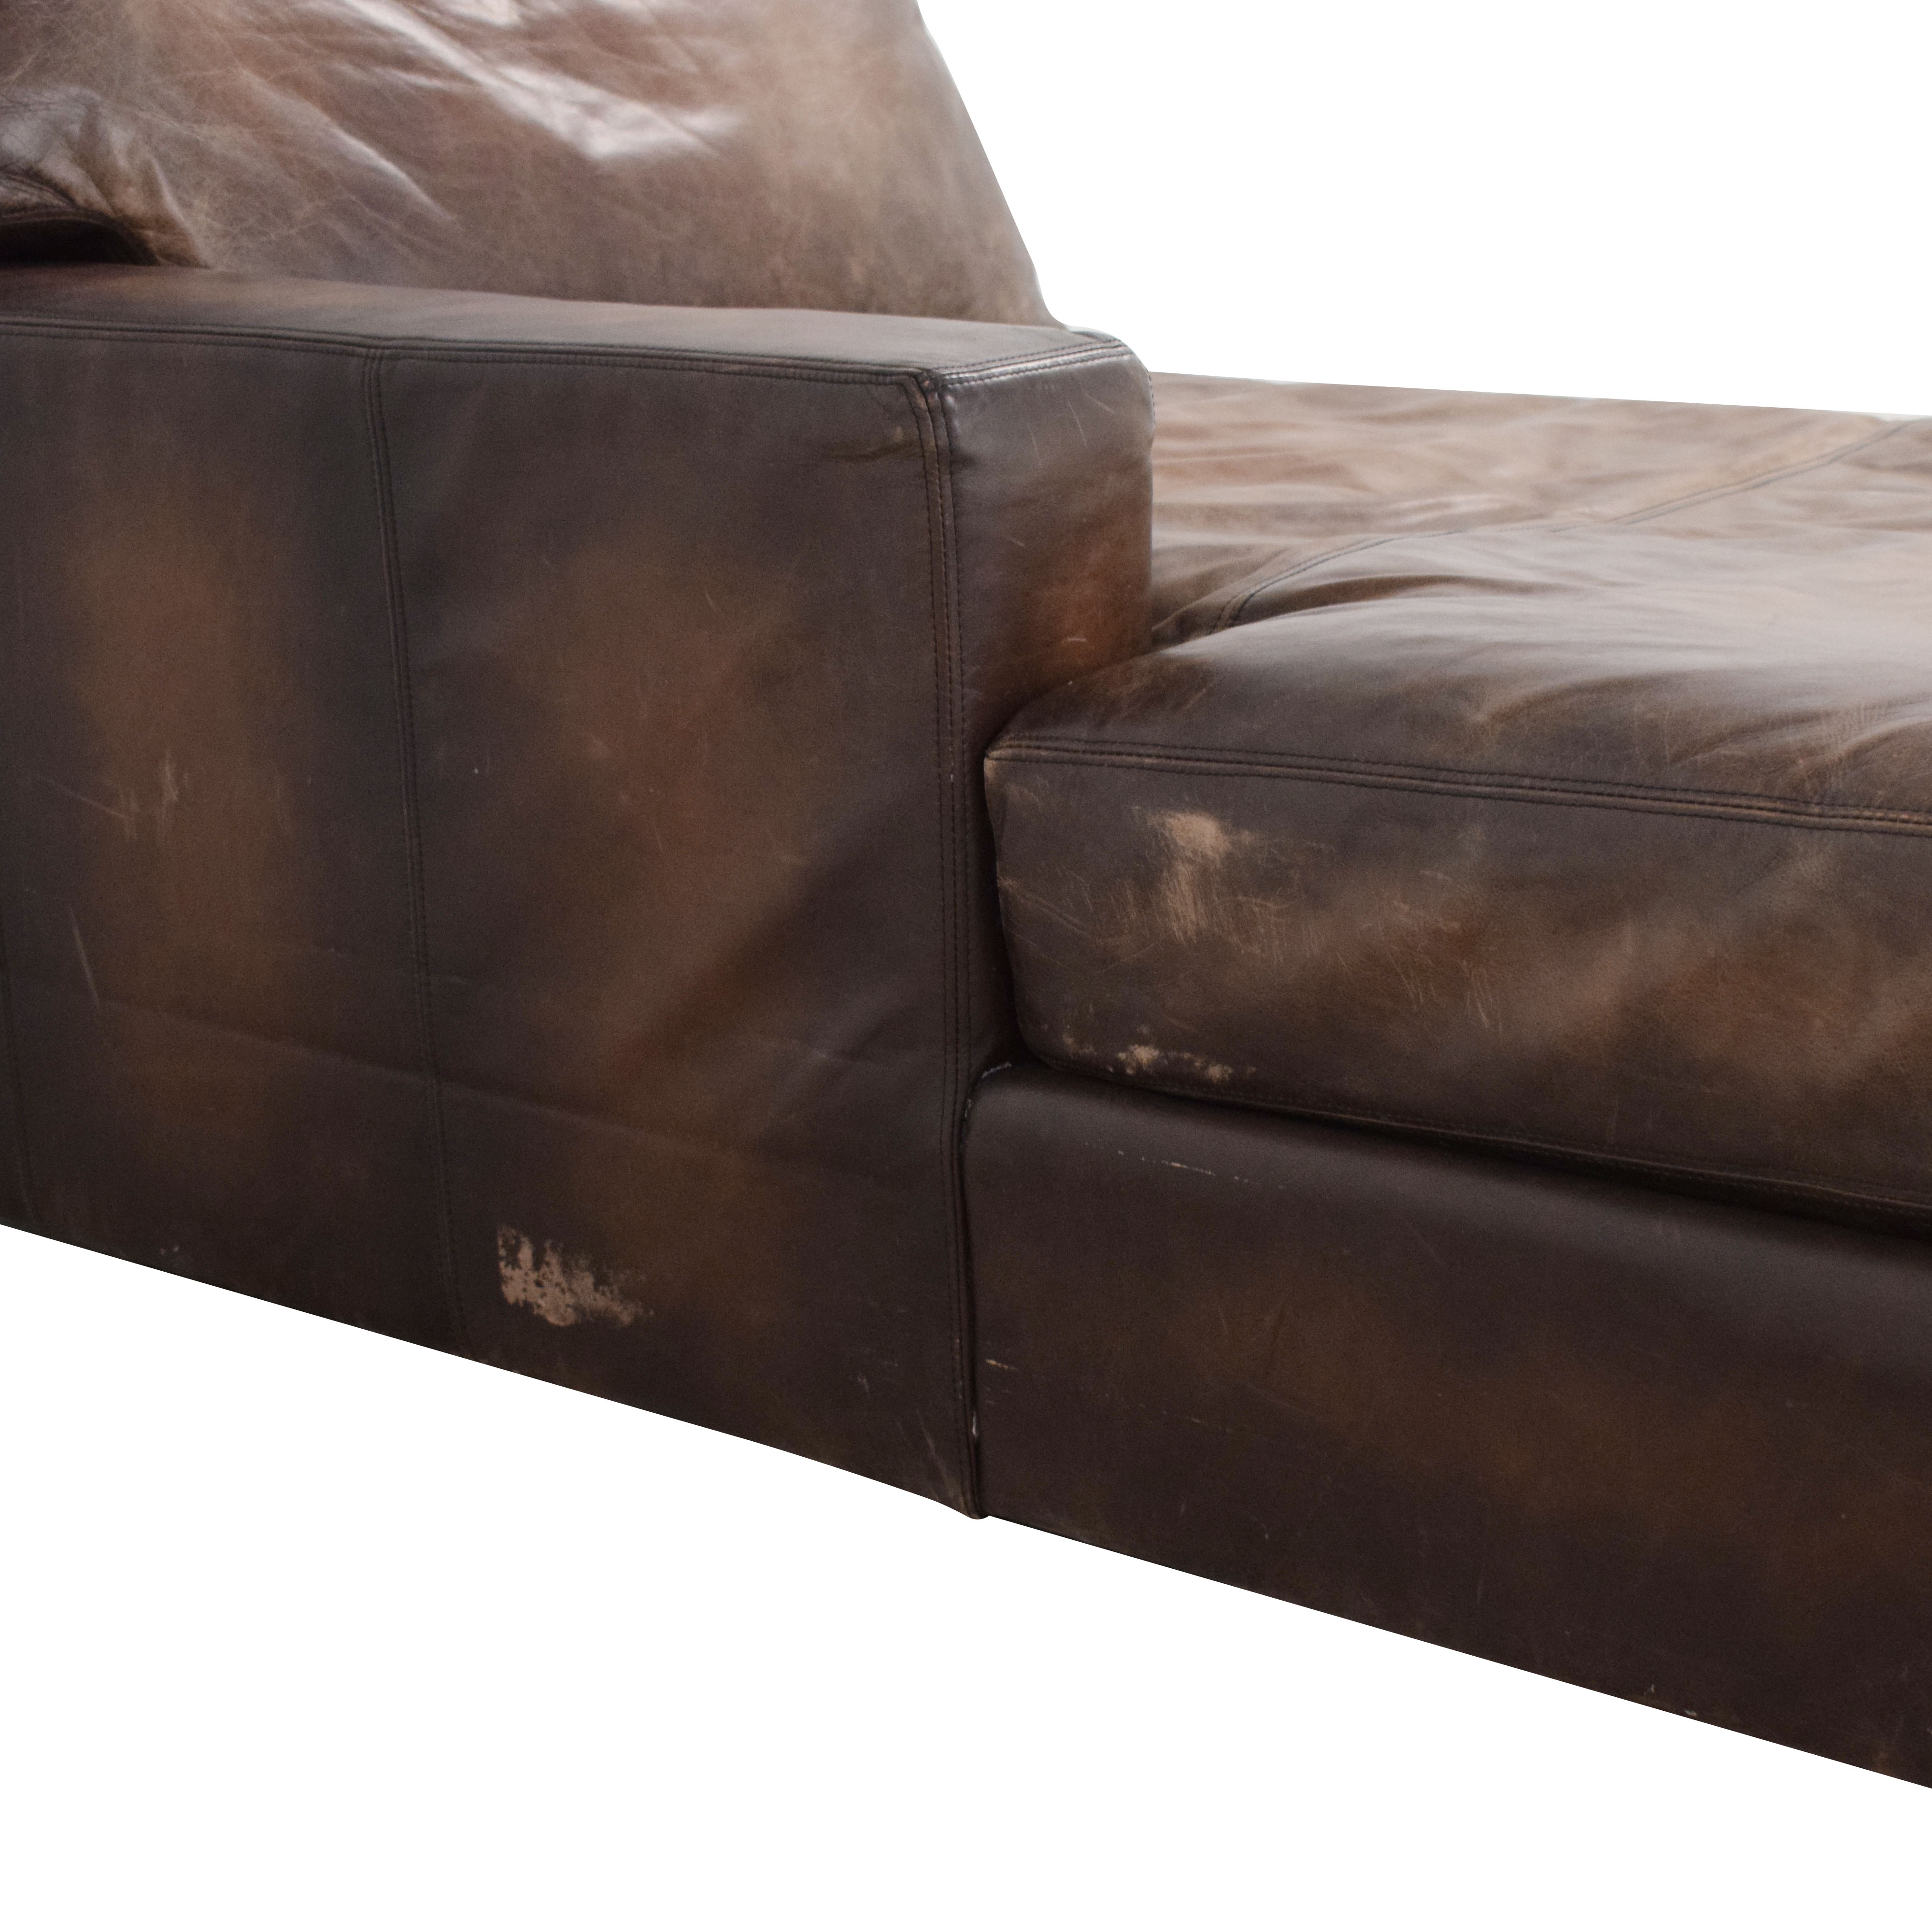 Pottery Barn Pottery Barn Turner Chaise Lounge ct